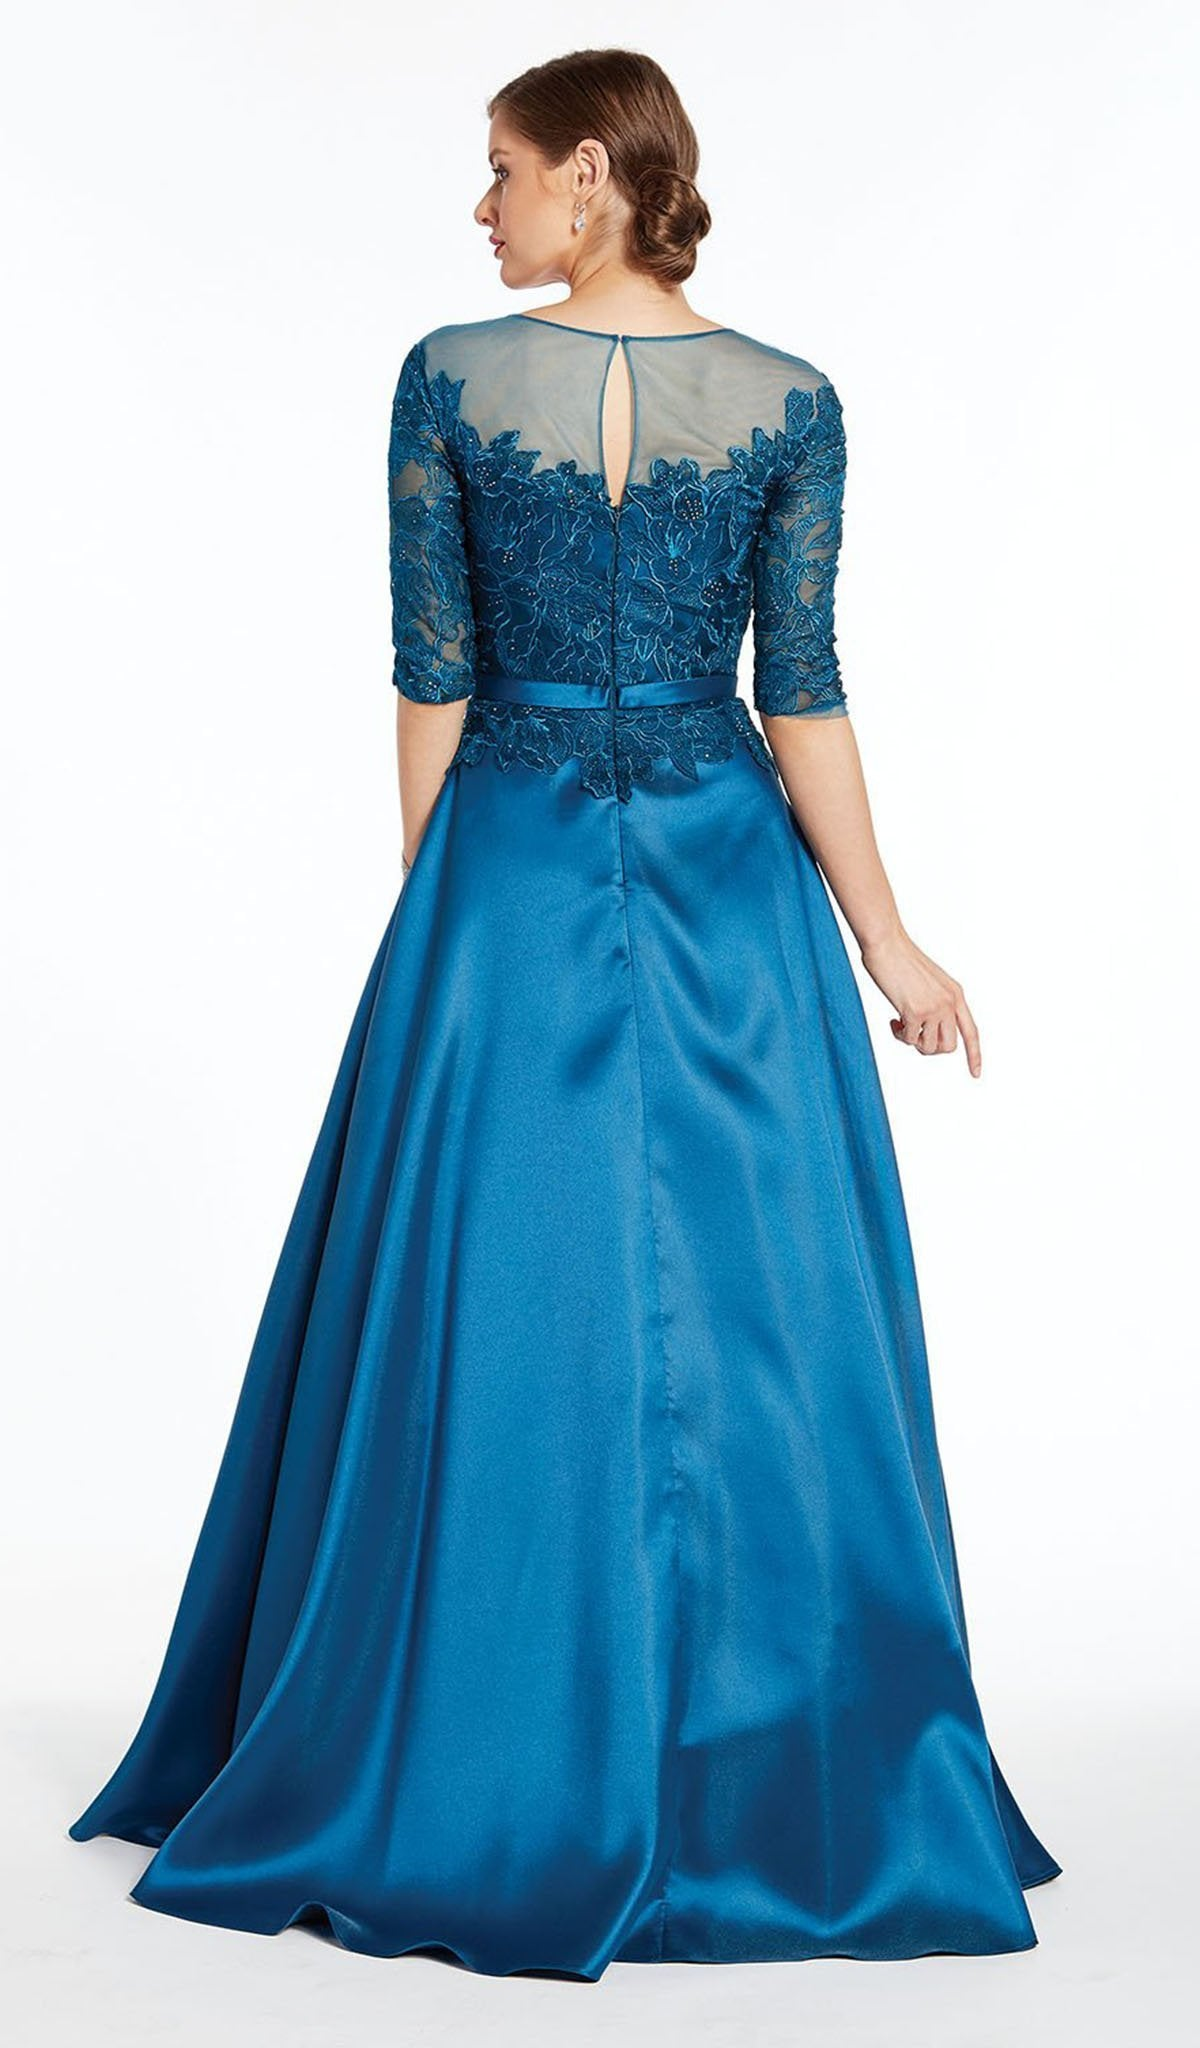 Alyce Paris - 27307 Quarter Sleeve Illusion Neckline Lace Mikado Gown In Blue